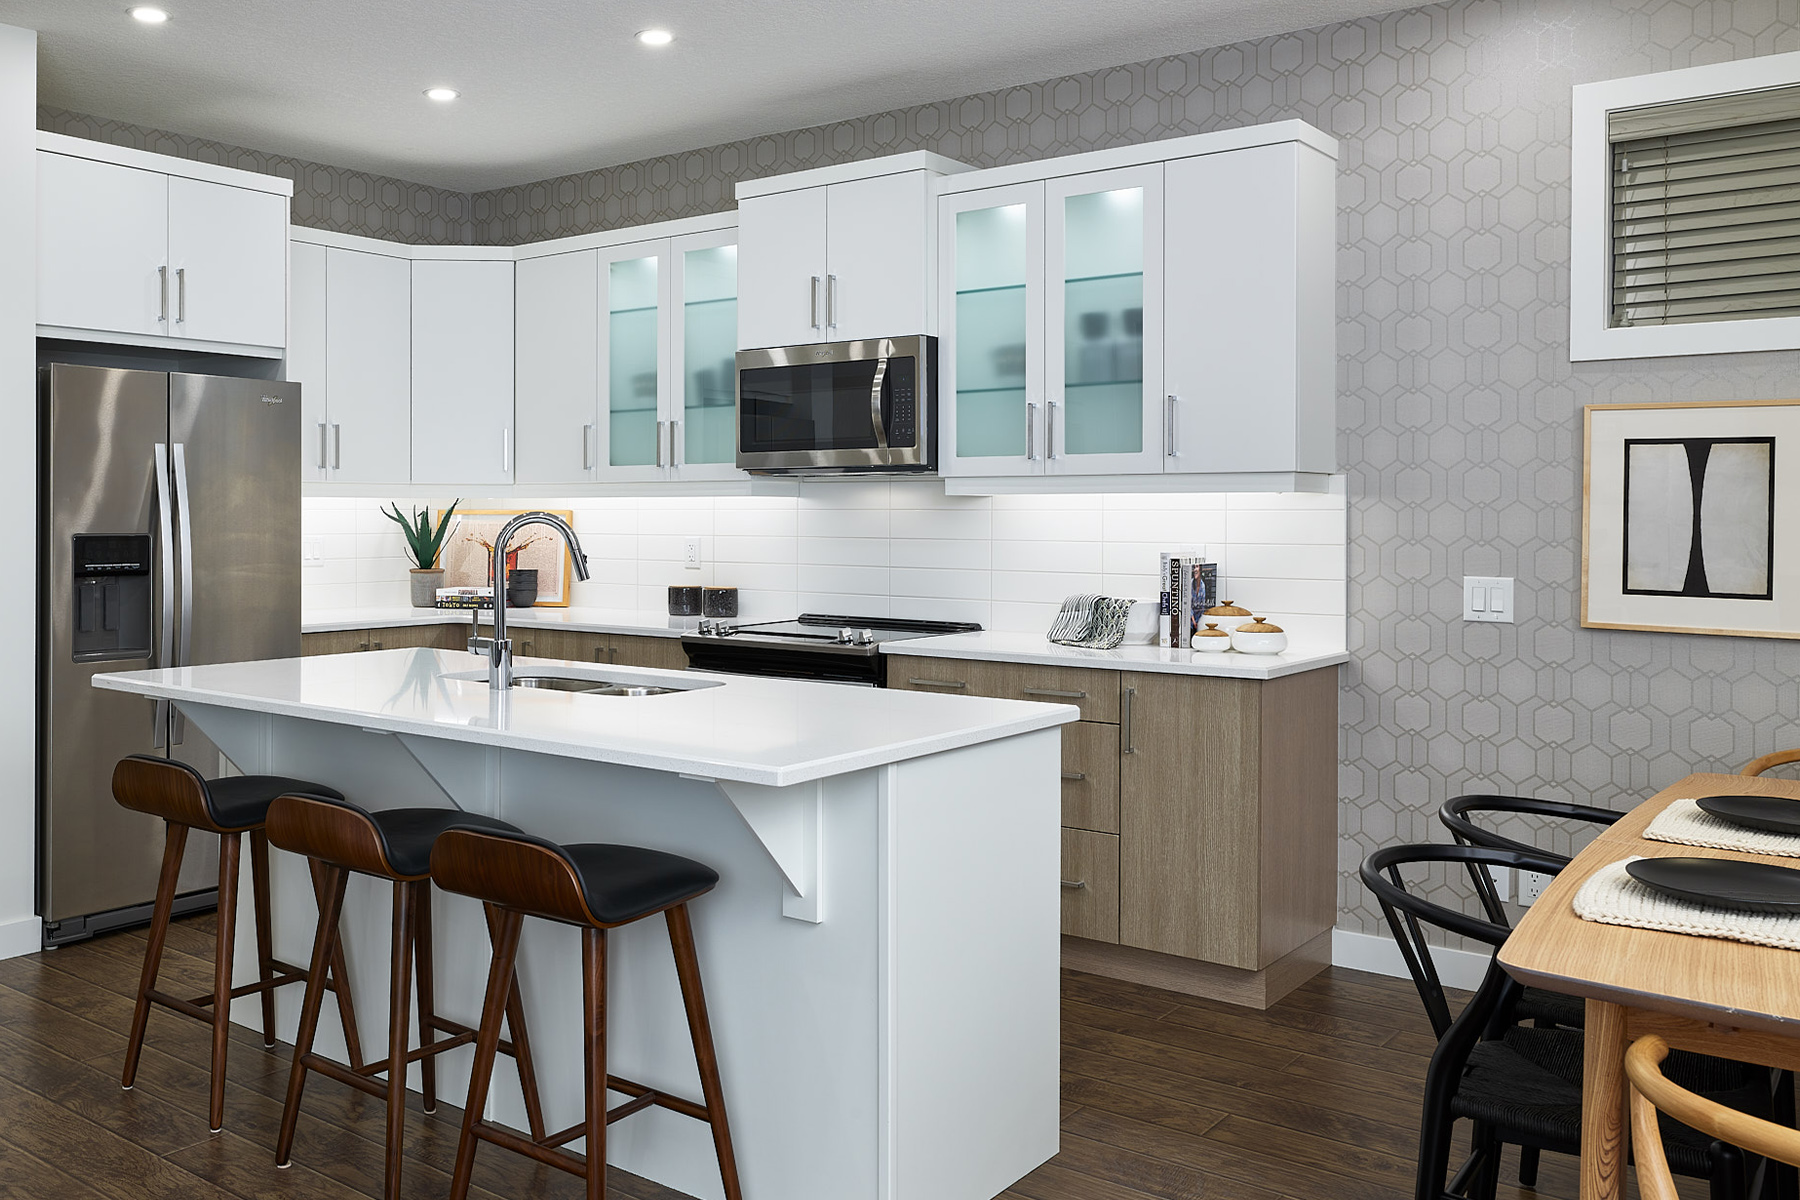 Hudson Plan Kitchen at The Enclave In Carrington in Calgary Alberta by Mattamy Homes